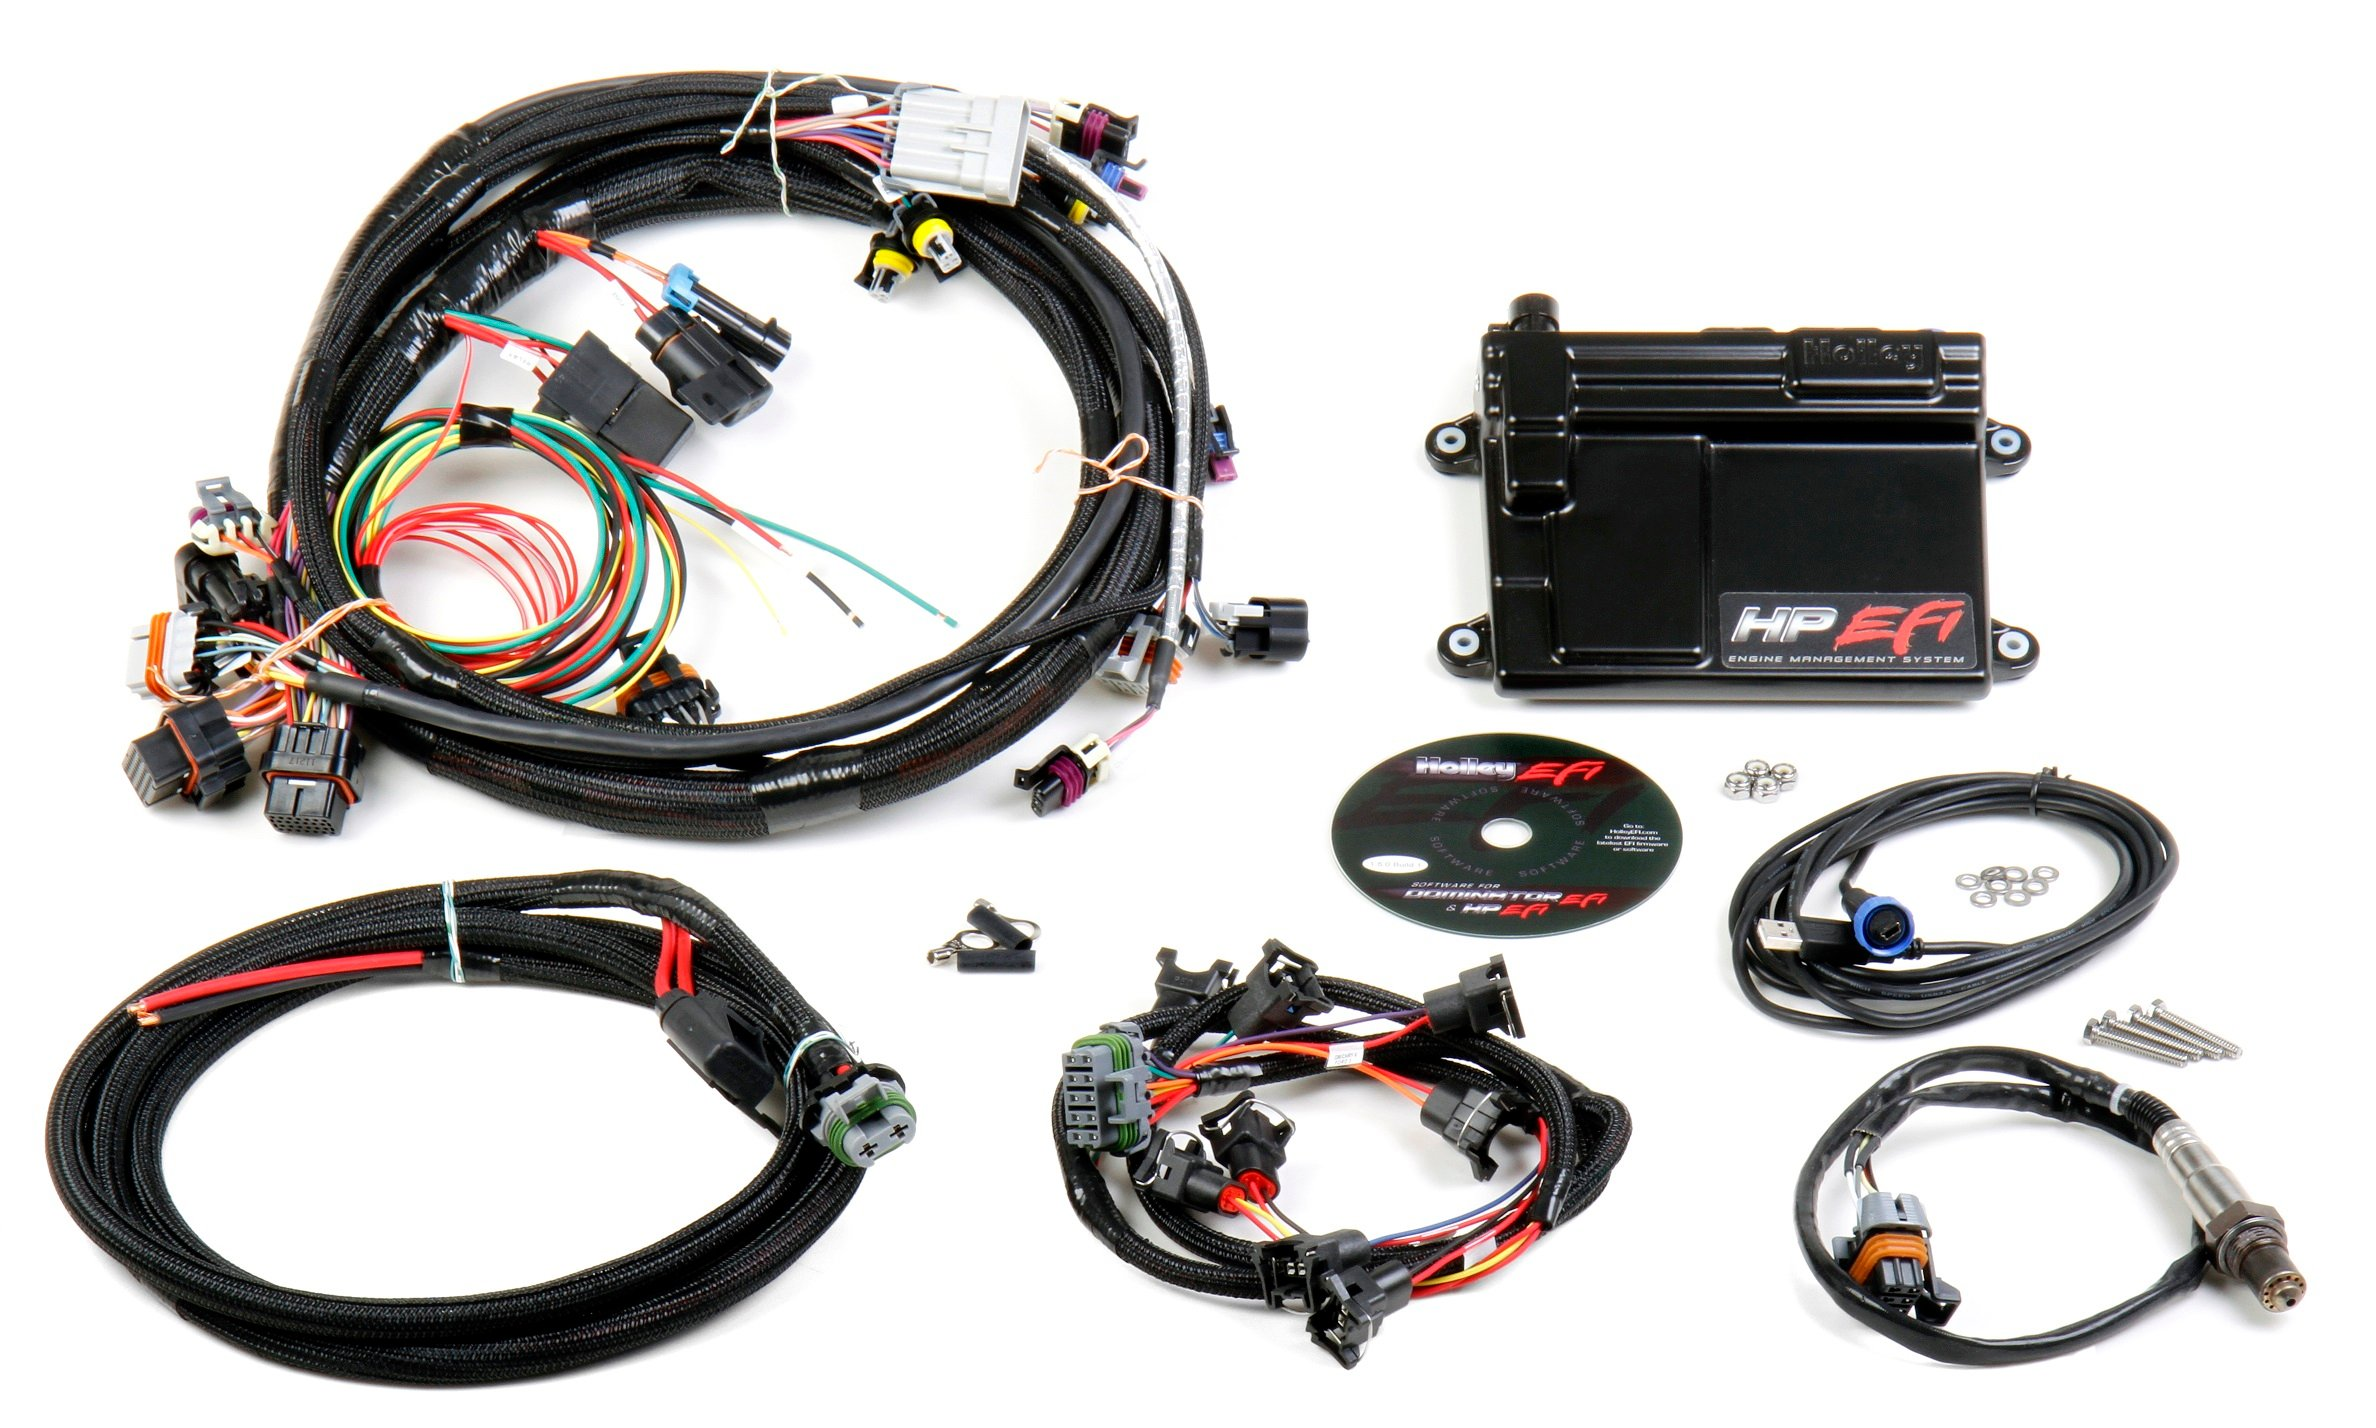 550-602 - HP EFI ECU & Harness Kits Image